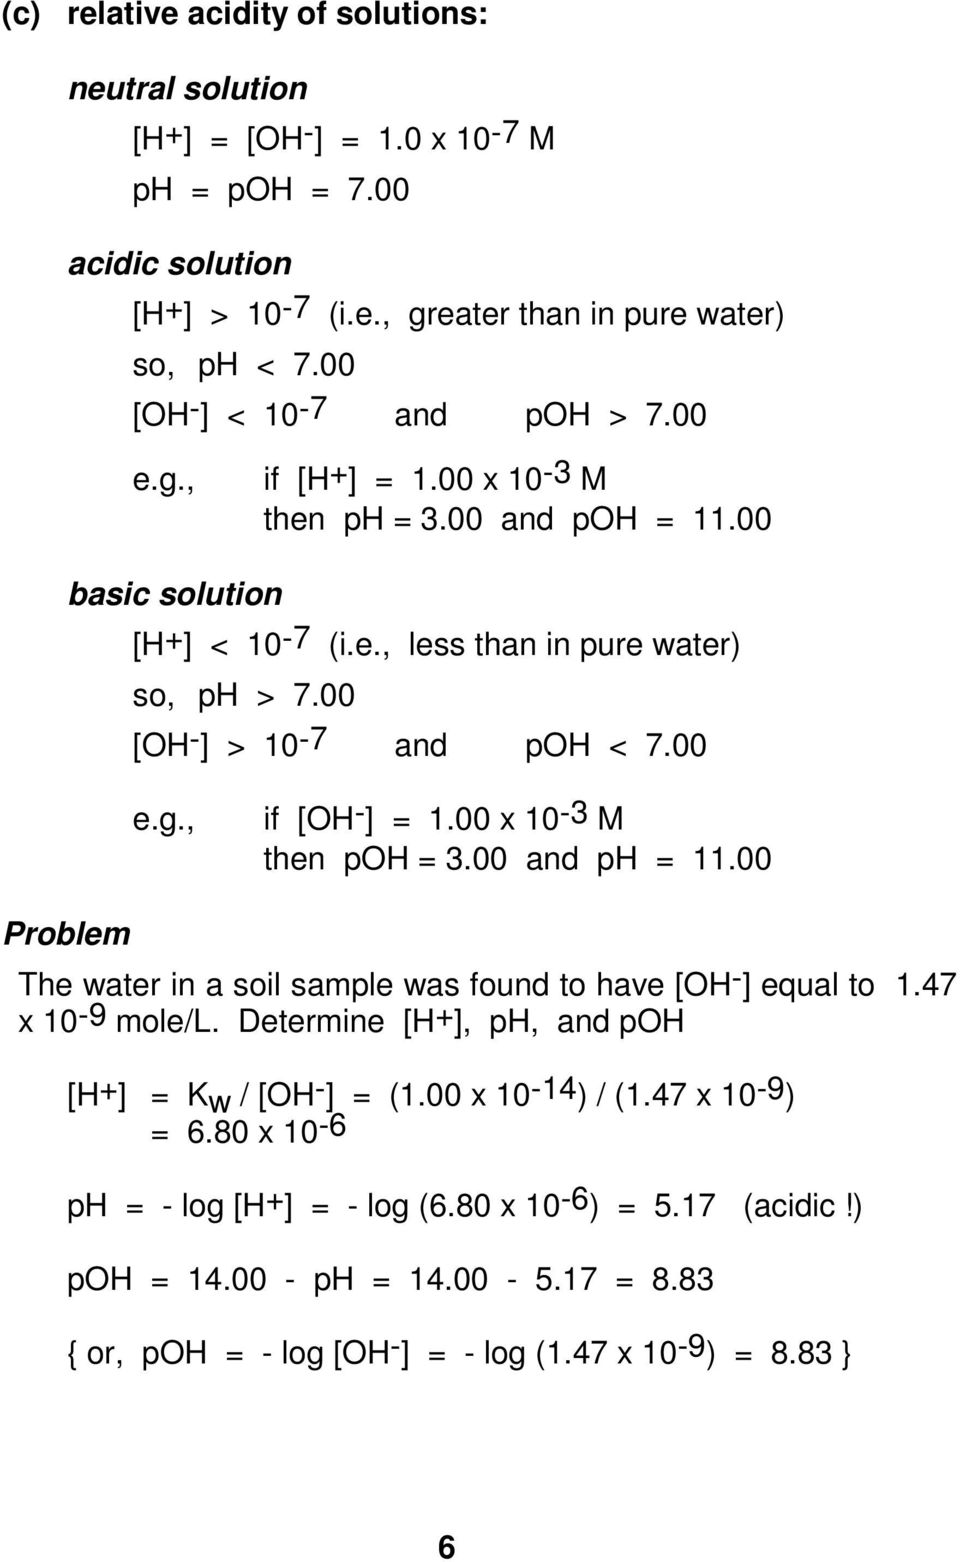 00 [OH-] > 10-7 and poh < 7.00 e.g., if [OH-] = 1.00 x 10-3 M then poh = 3.00 and ph = 11.00 Problem The water in a soil sample was found to have [OH-] equal to 1.47 x 10-9 mole/l.